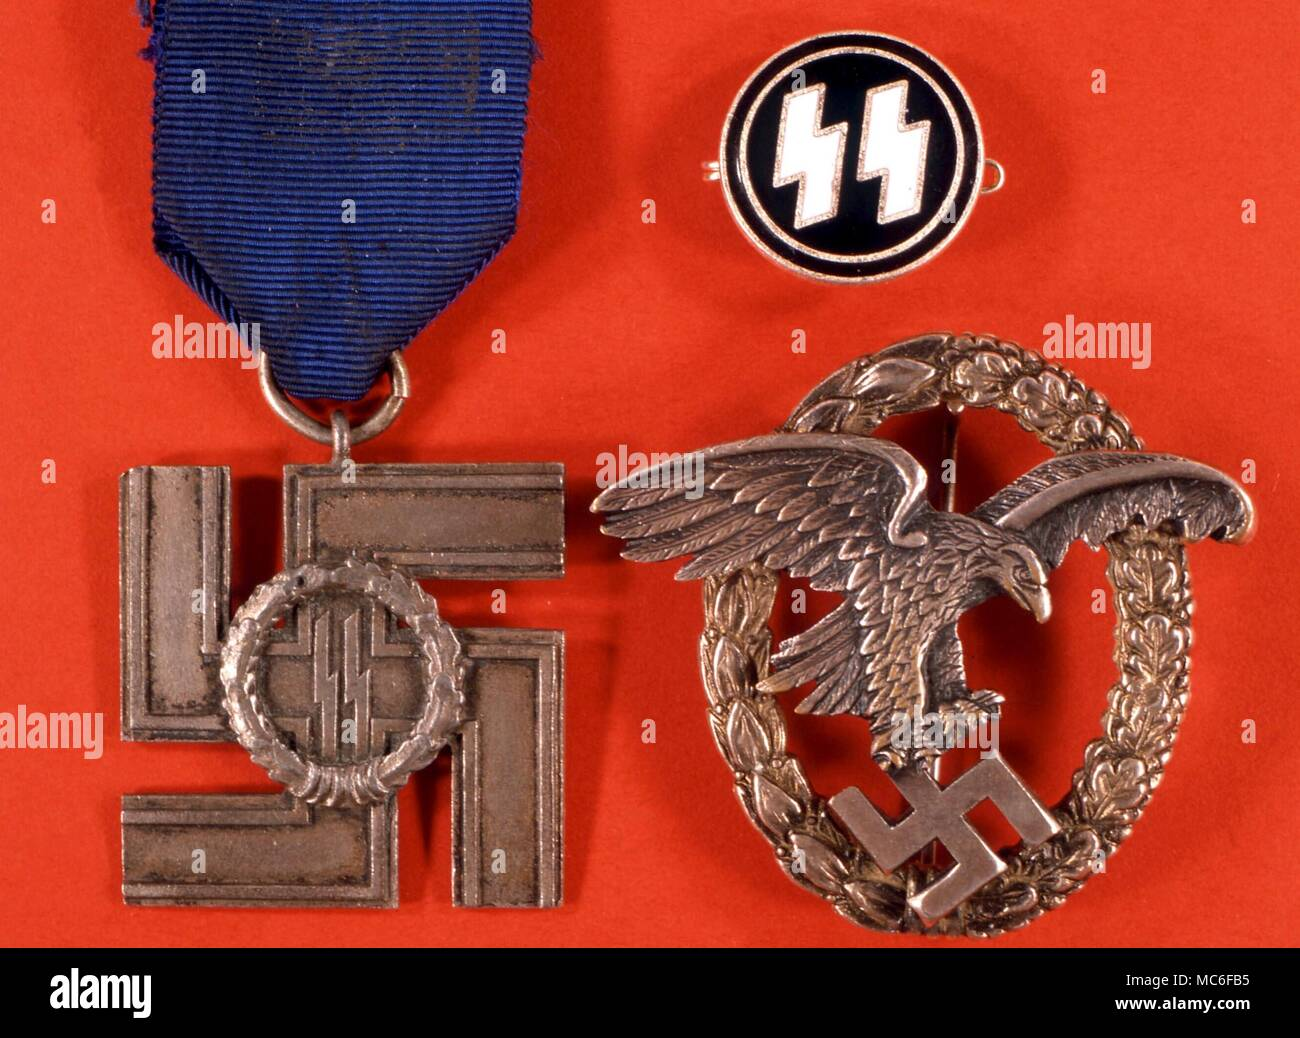 Swastika Swastika In The Talons Of An Eagle Nazi Service Medal